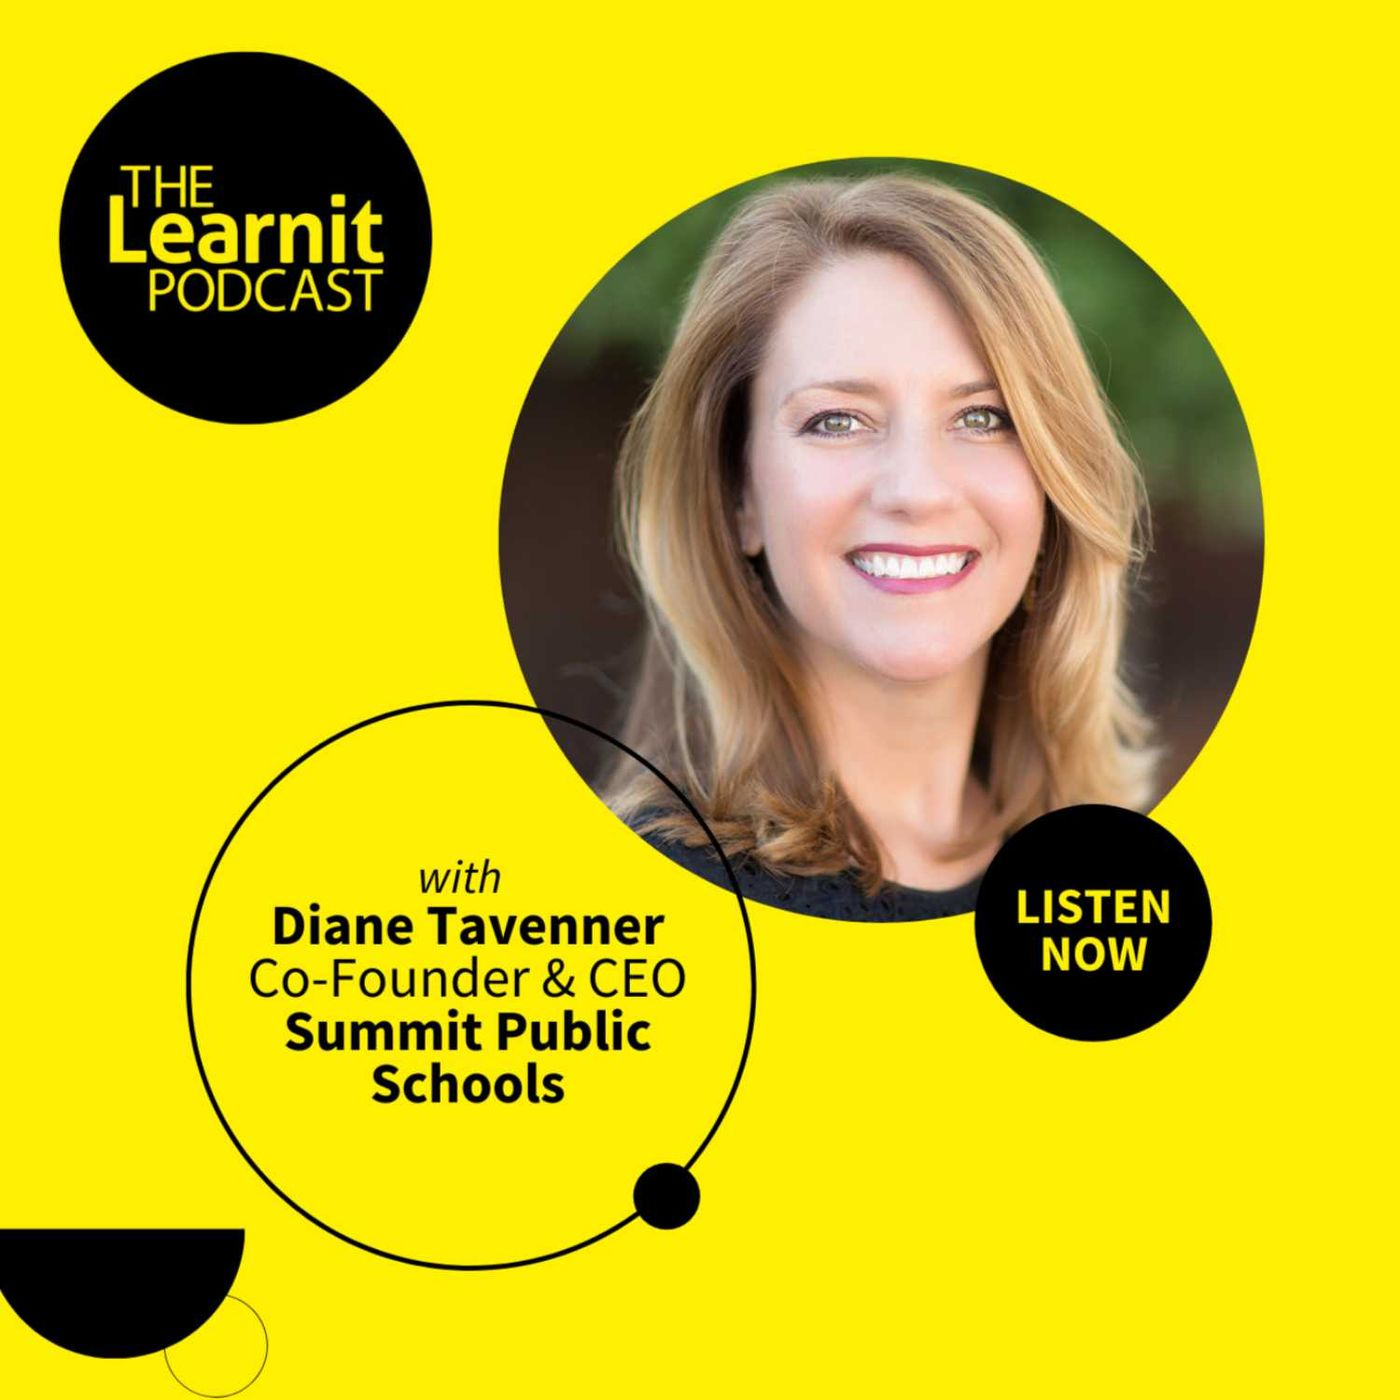 #21, Diane Tavenner, Co-Founder & CEO, Summit Public Schools: How Does a Model of High Tech & High Touch Fare During a Pandemic?